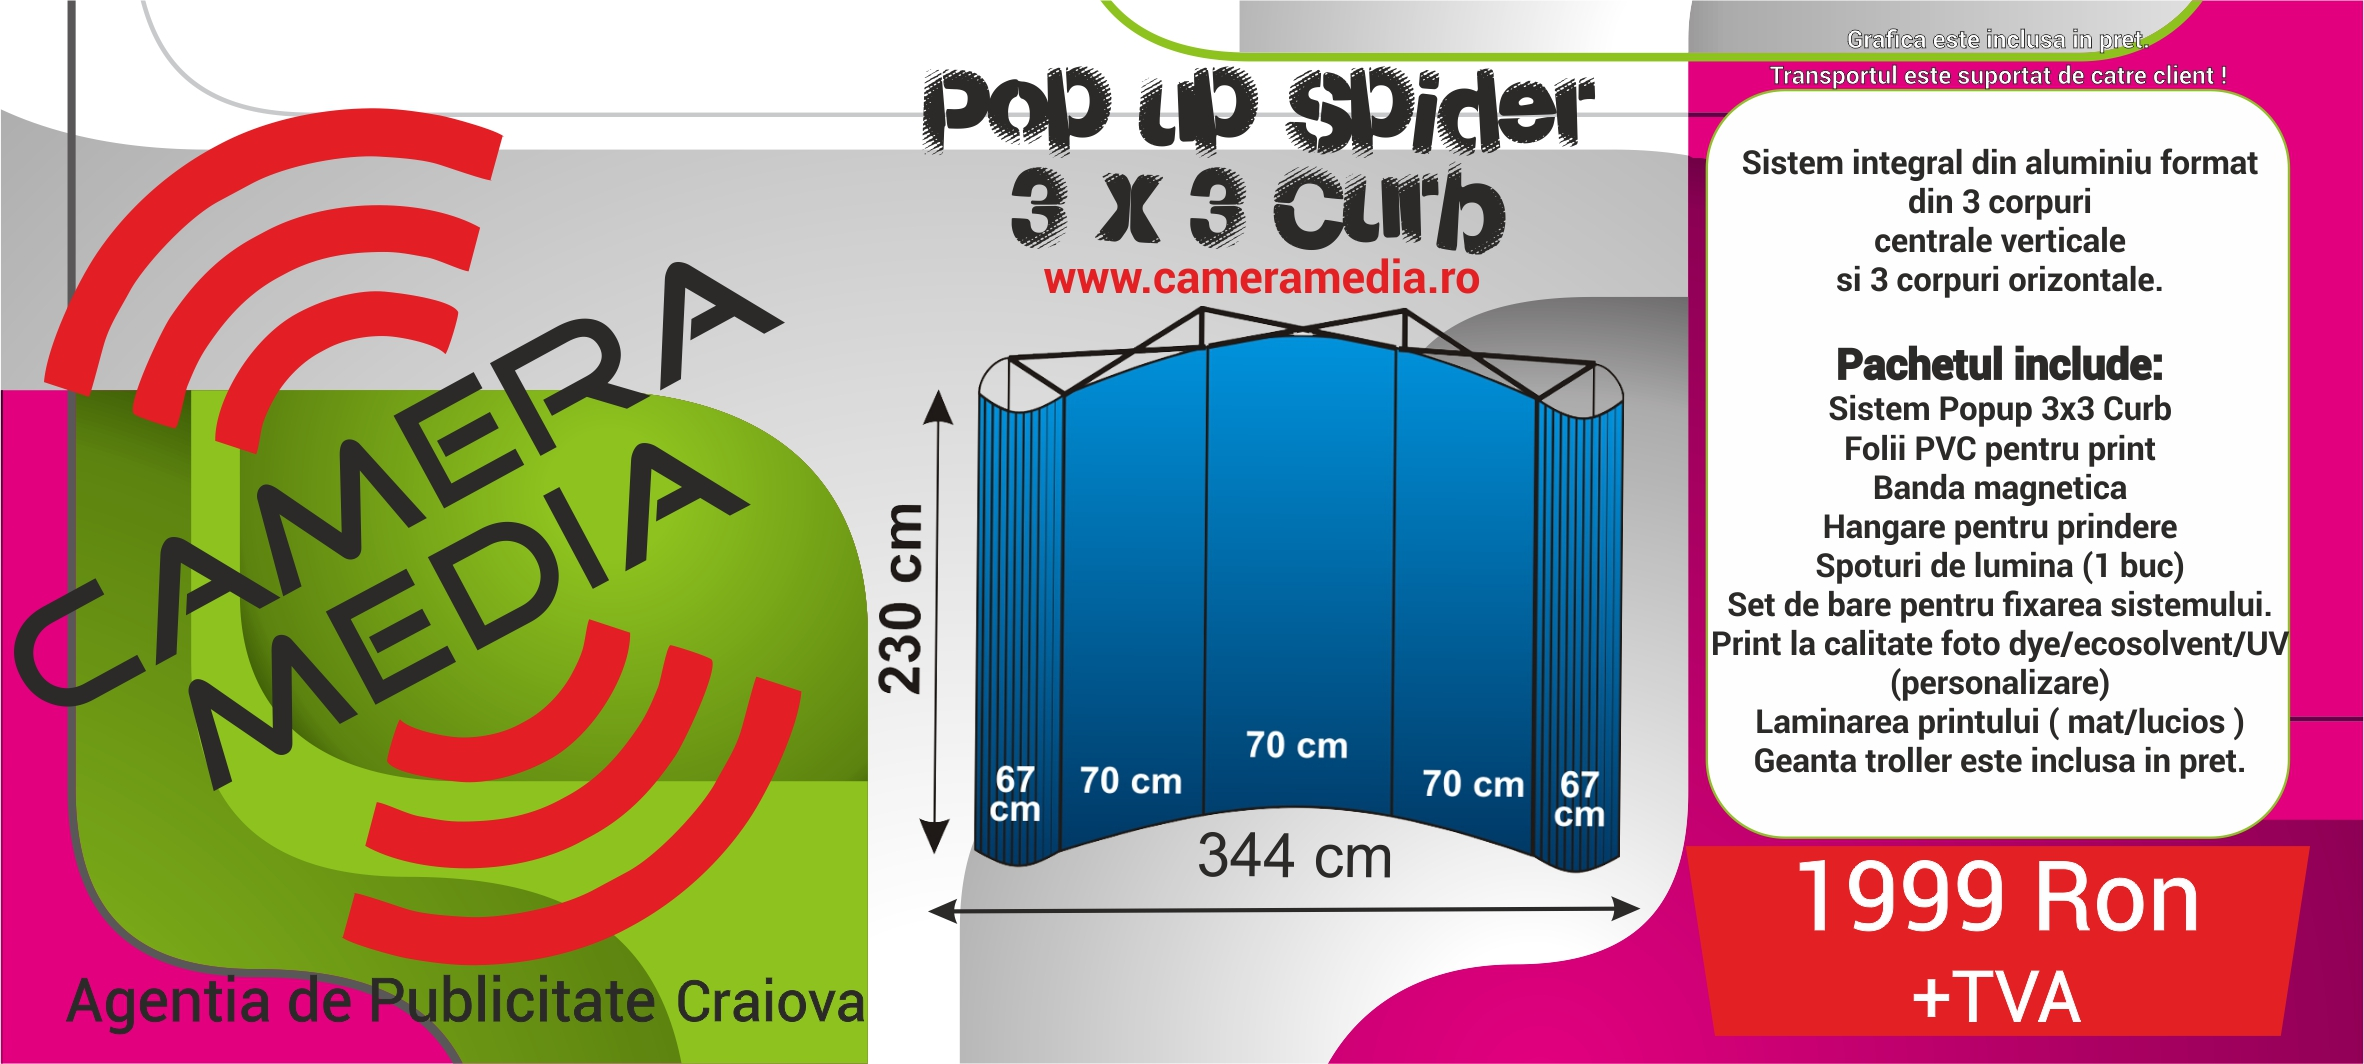 Oferta Spider Pop Up Camera Media Craiova Publicitate Craiova